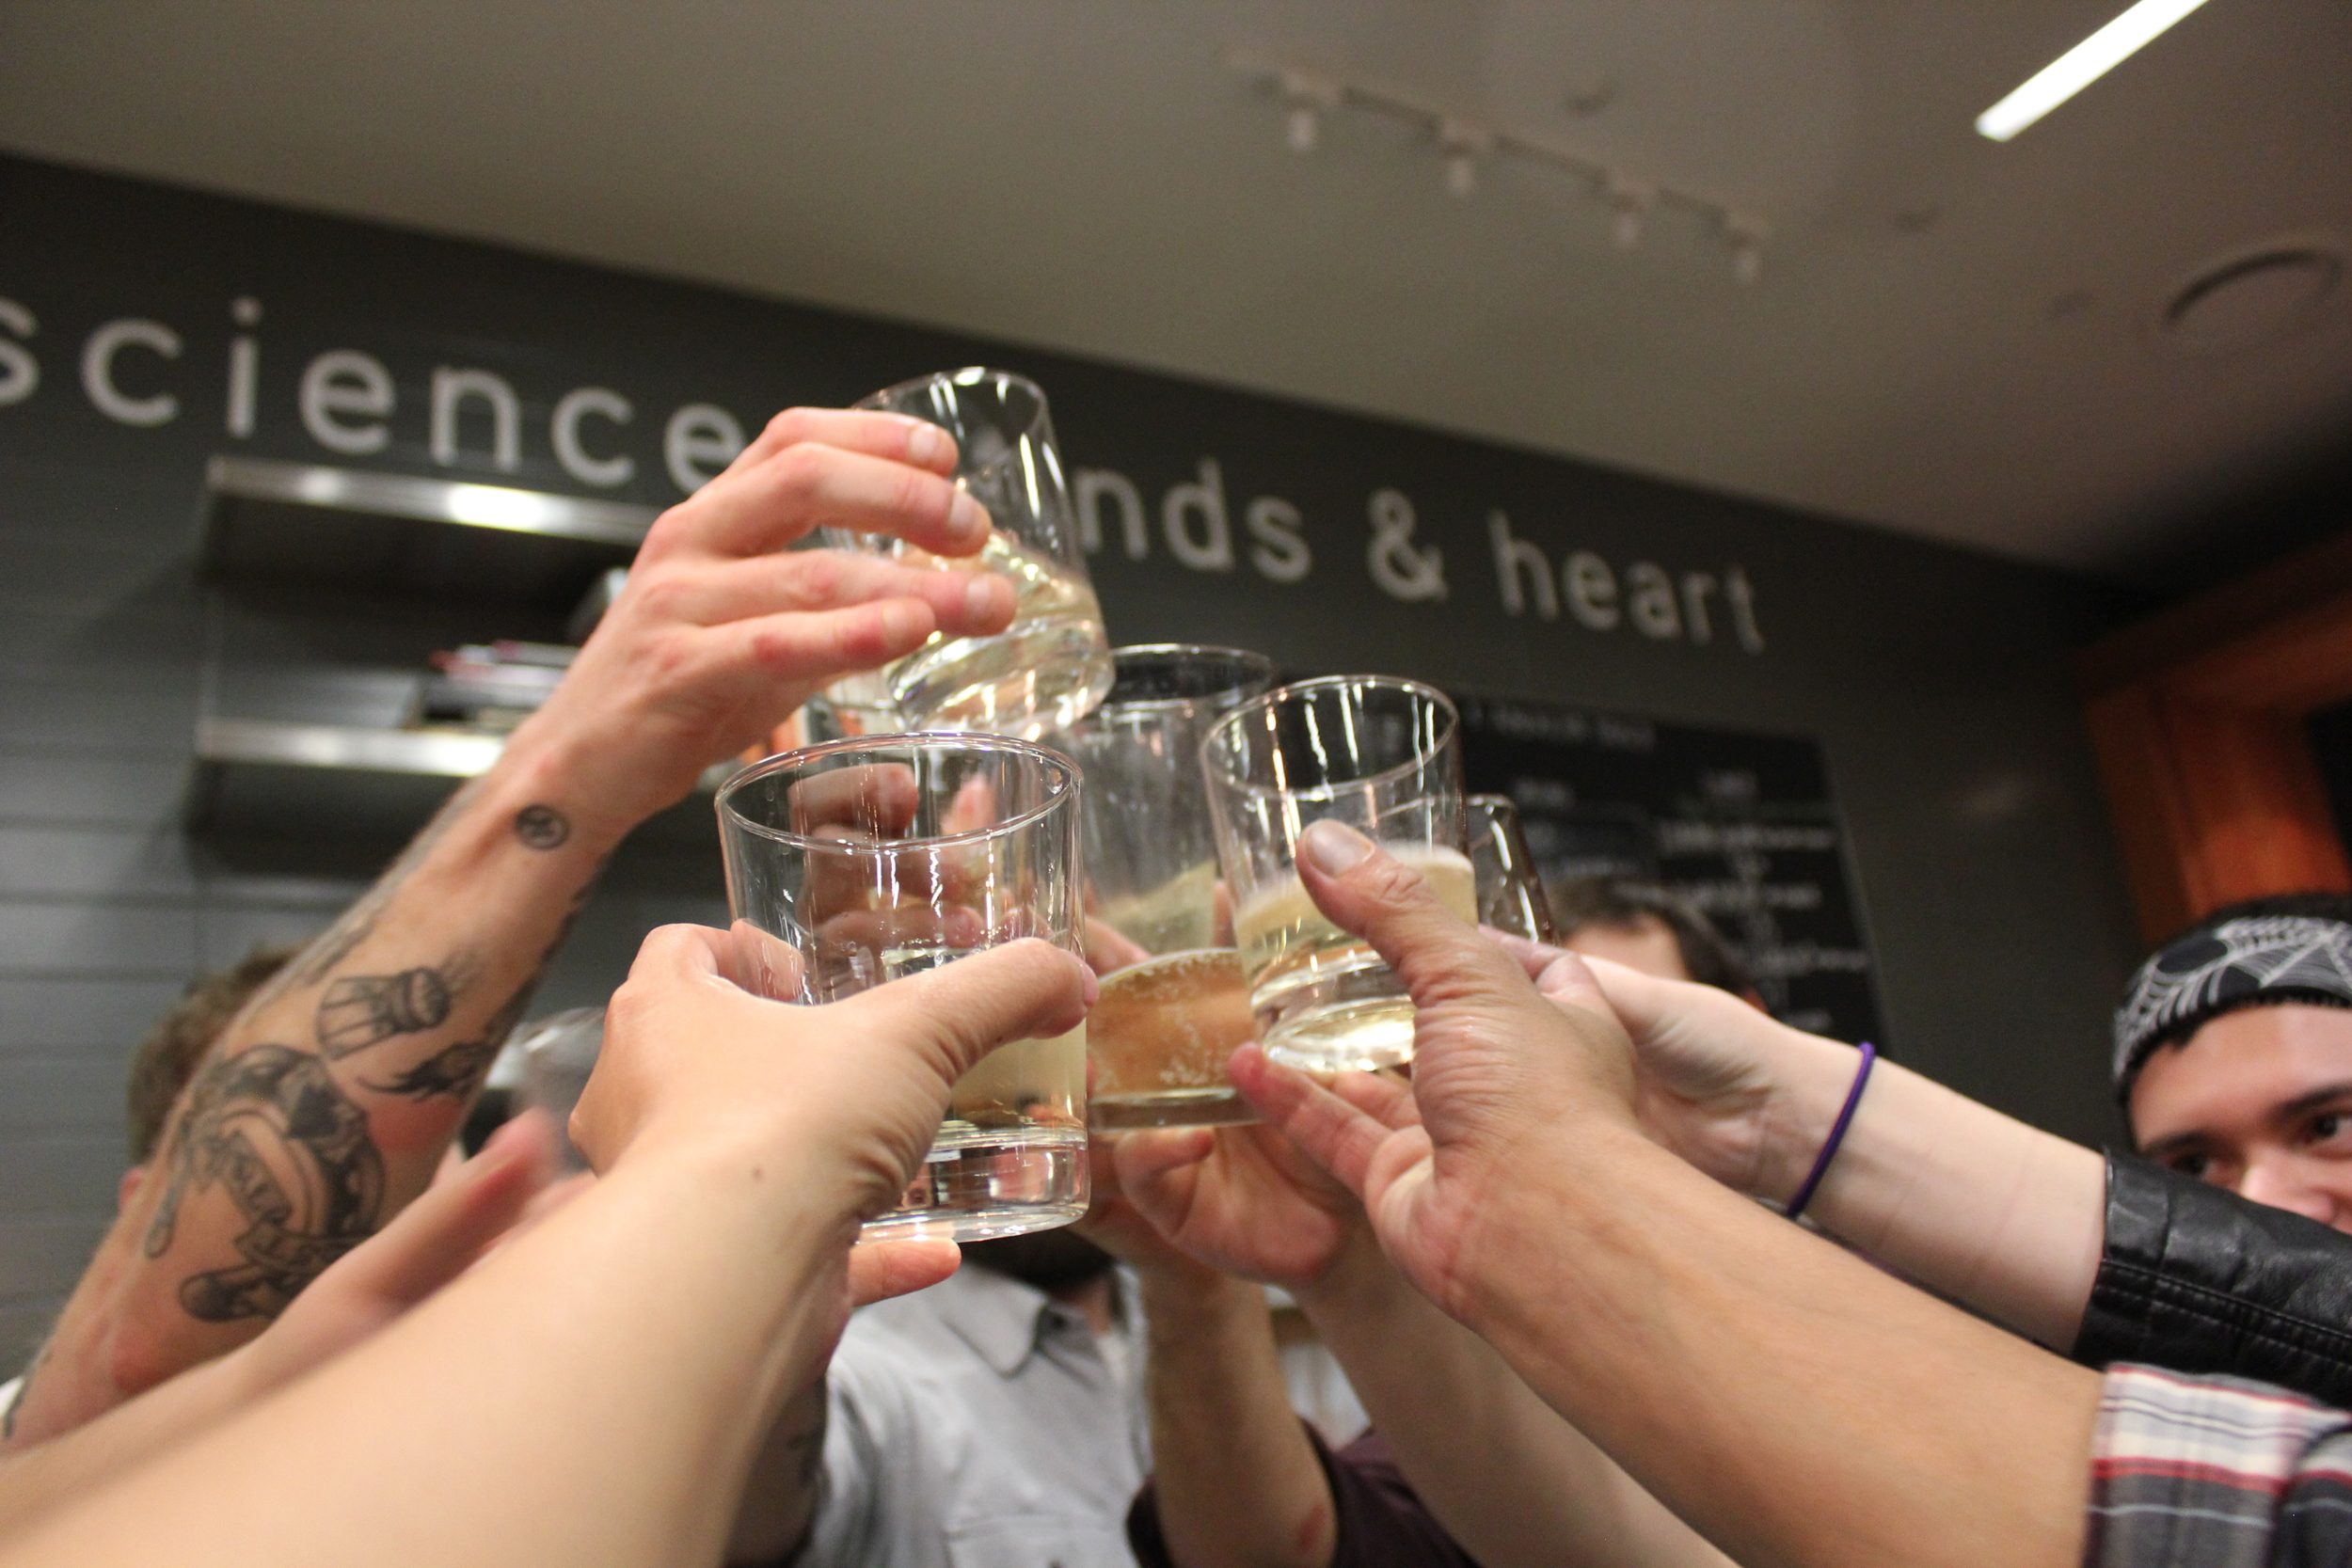 Champaigne toast to end the night